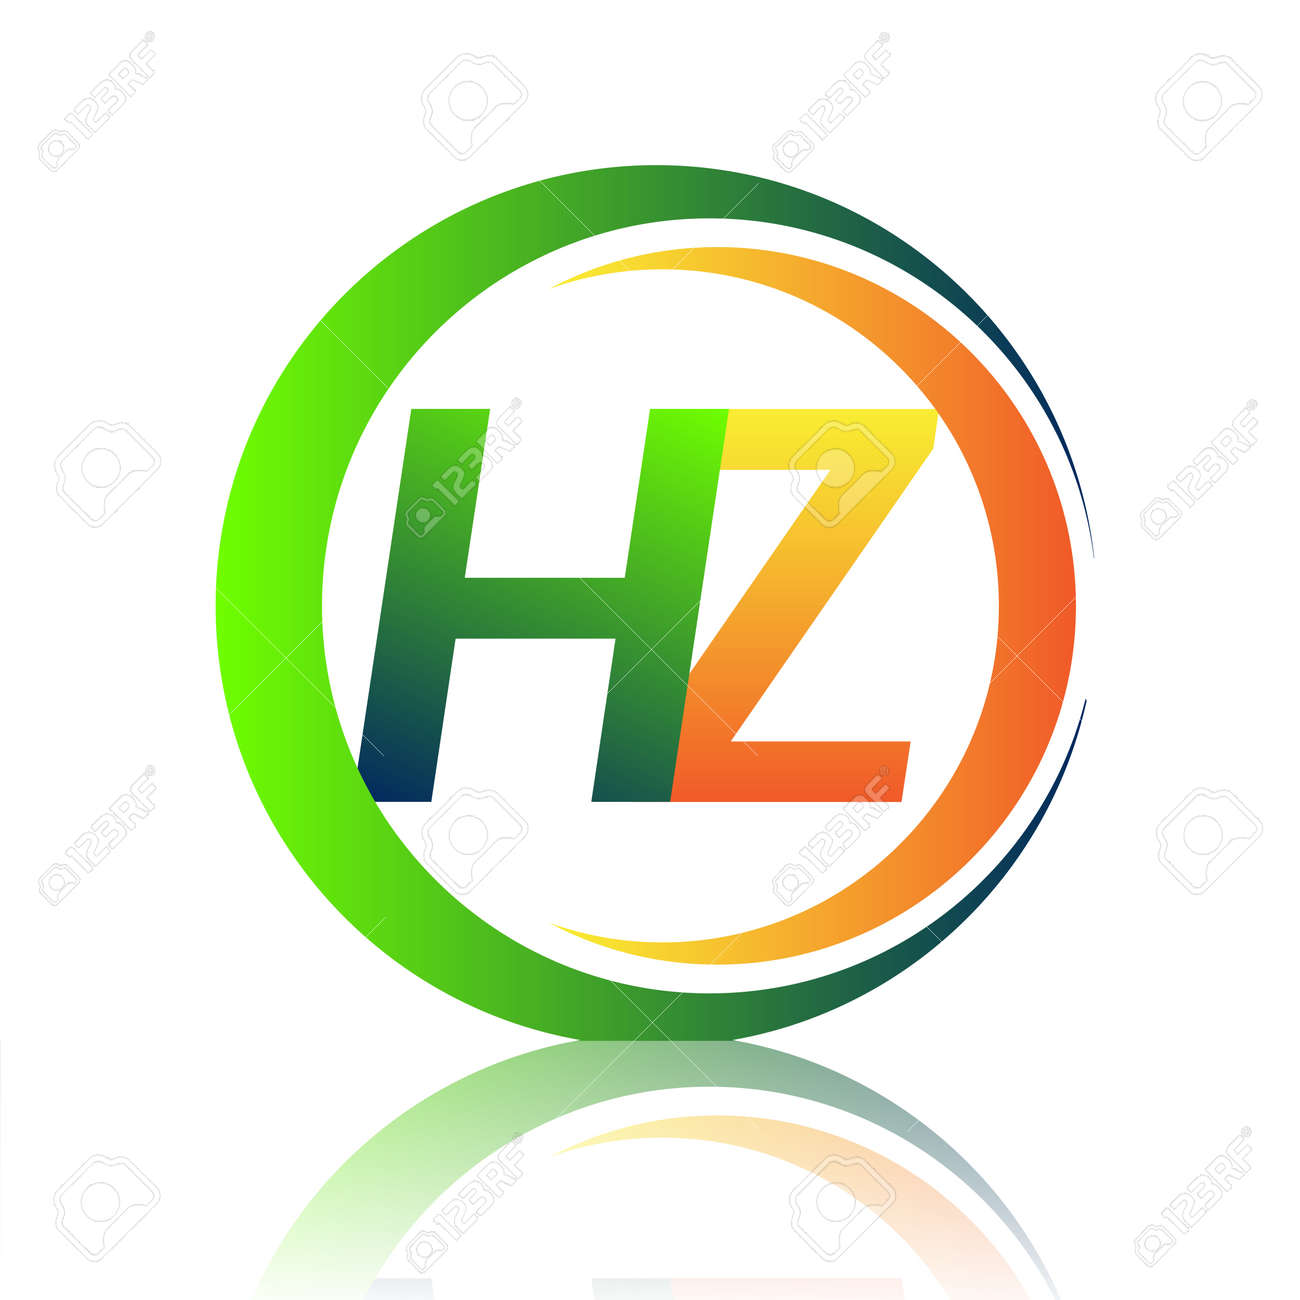 initial letter logo HZ company name green and orange color on circle and swoosh design. vector logotype for business and company identity. - 160136717